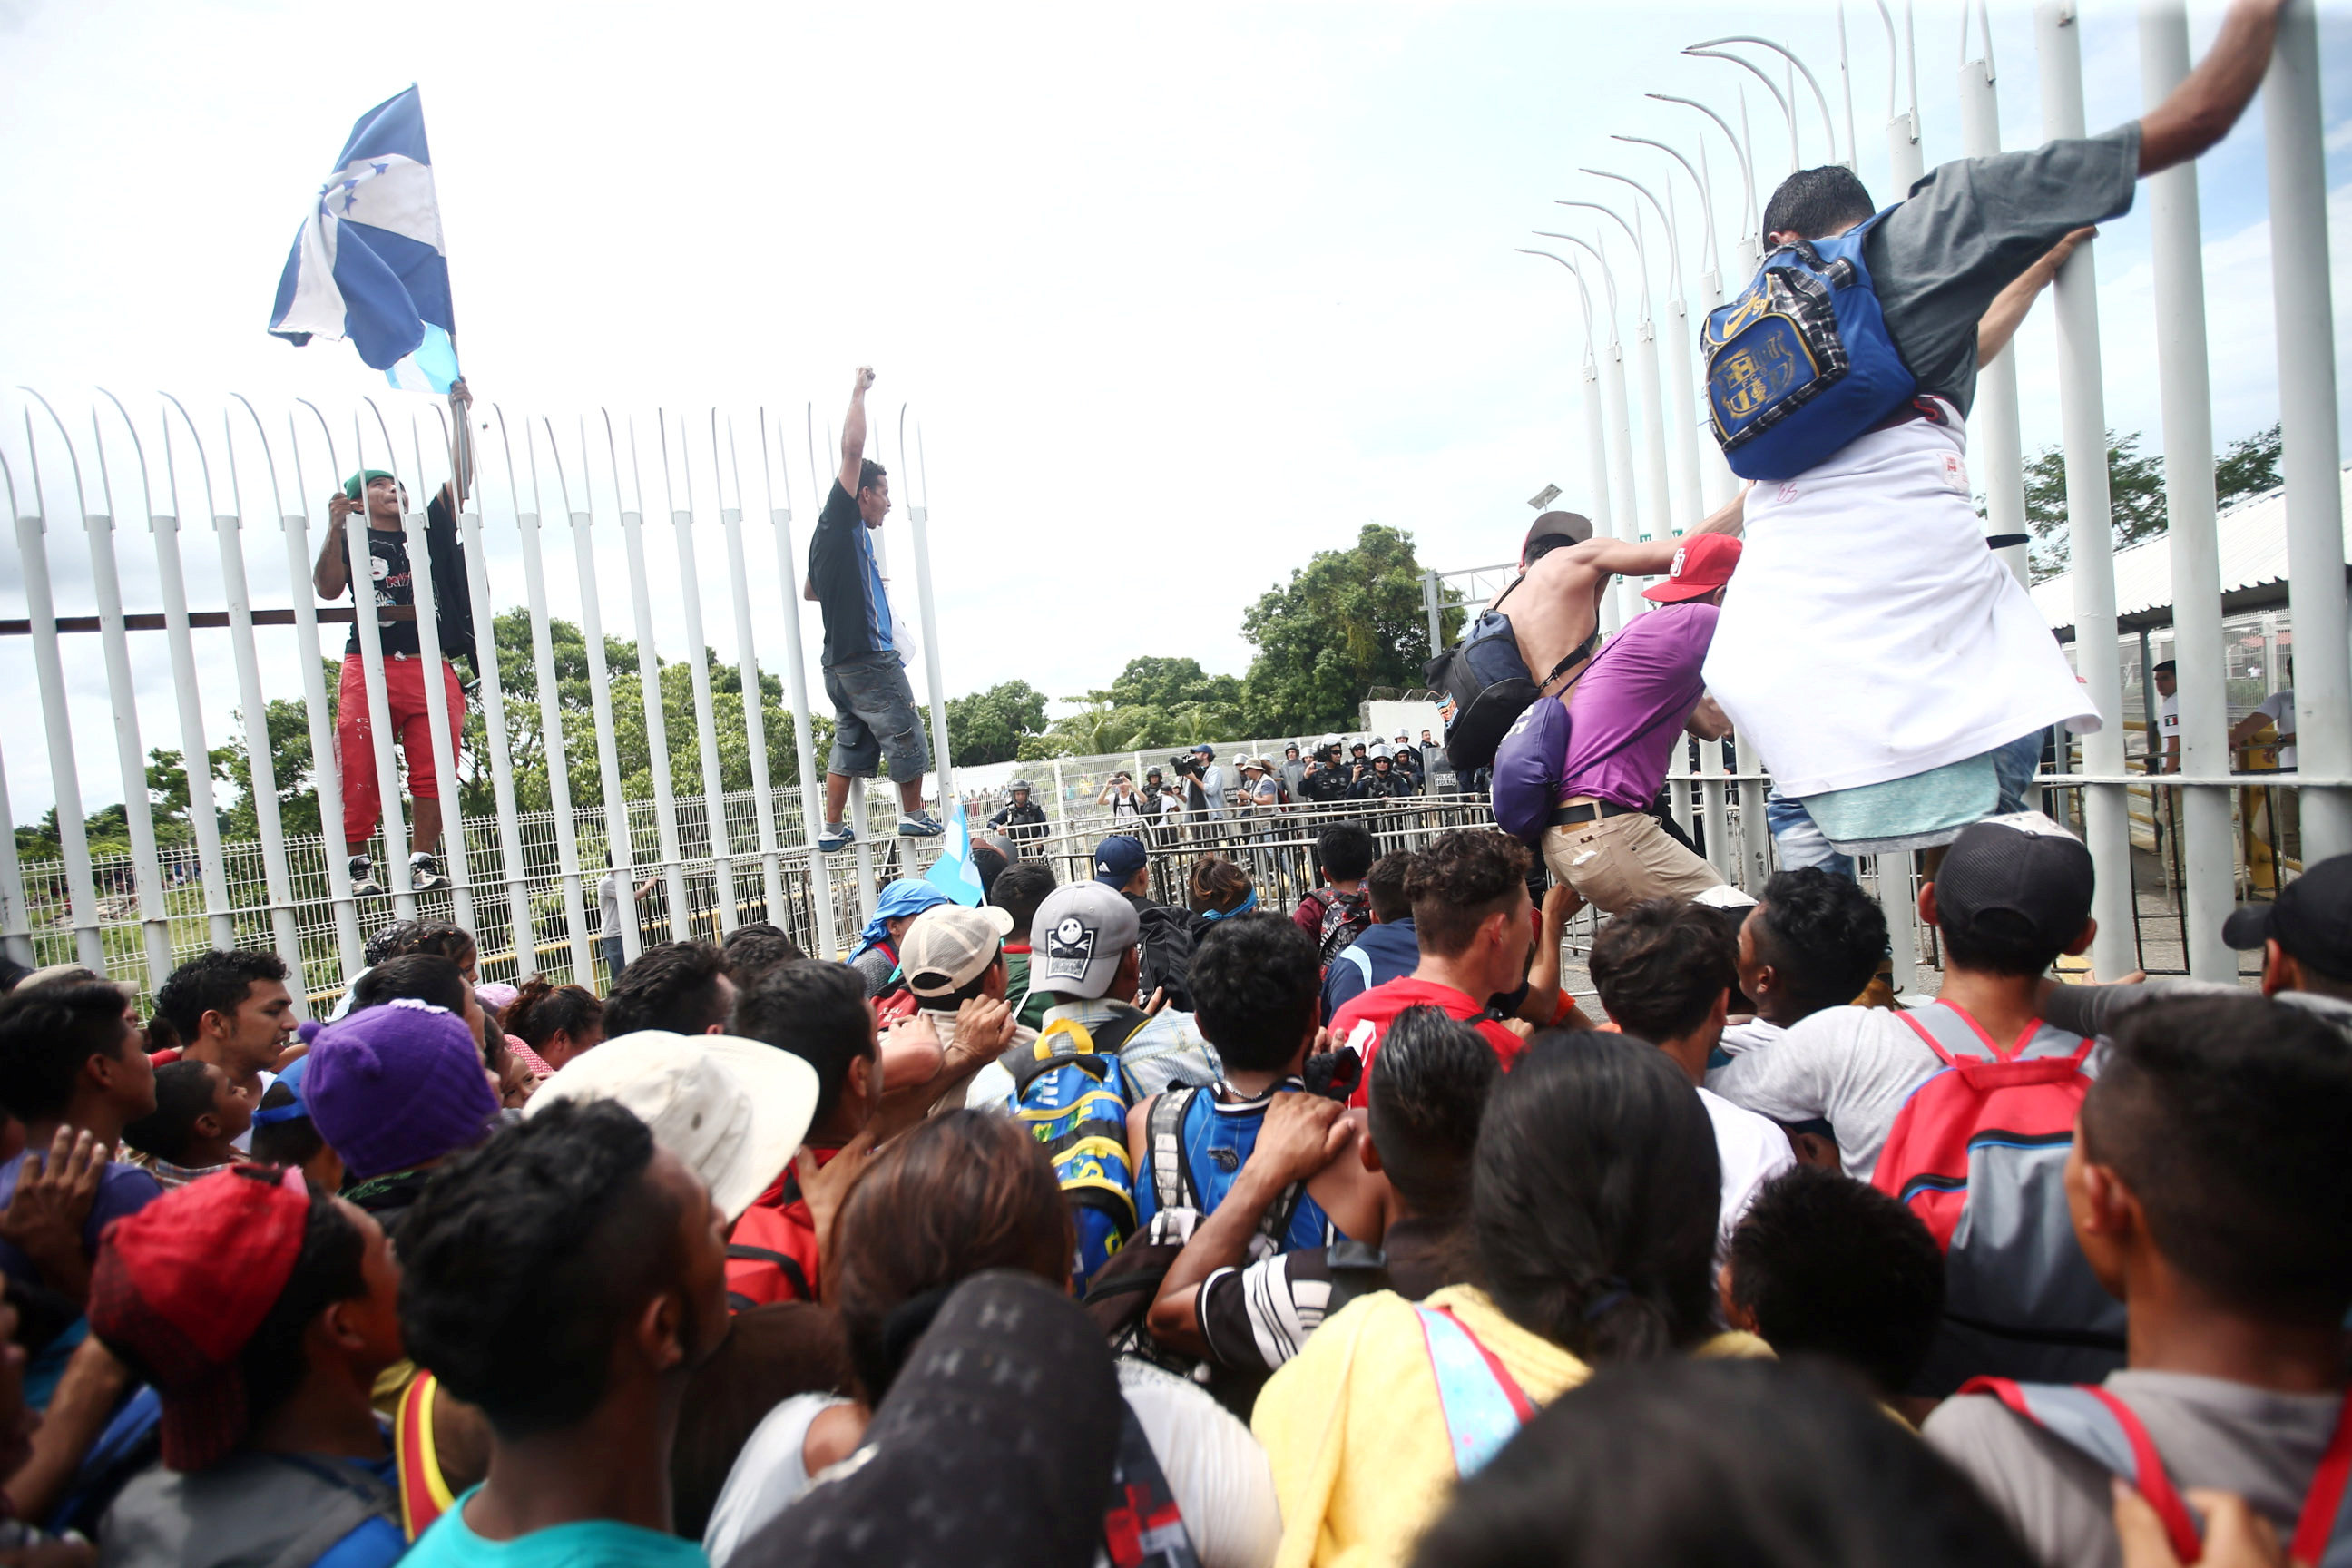 Honduran migrants, part of a caravan trying to reach the U.S., storm a border checkpoint, in Ciudad Hidalgo